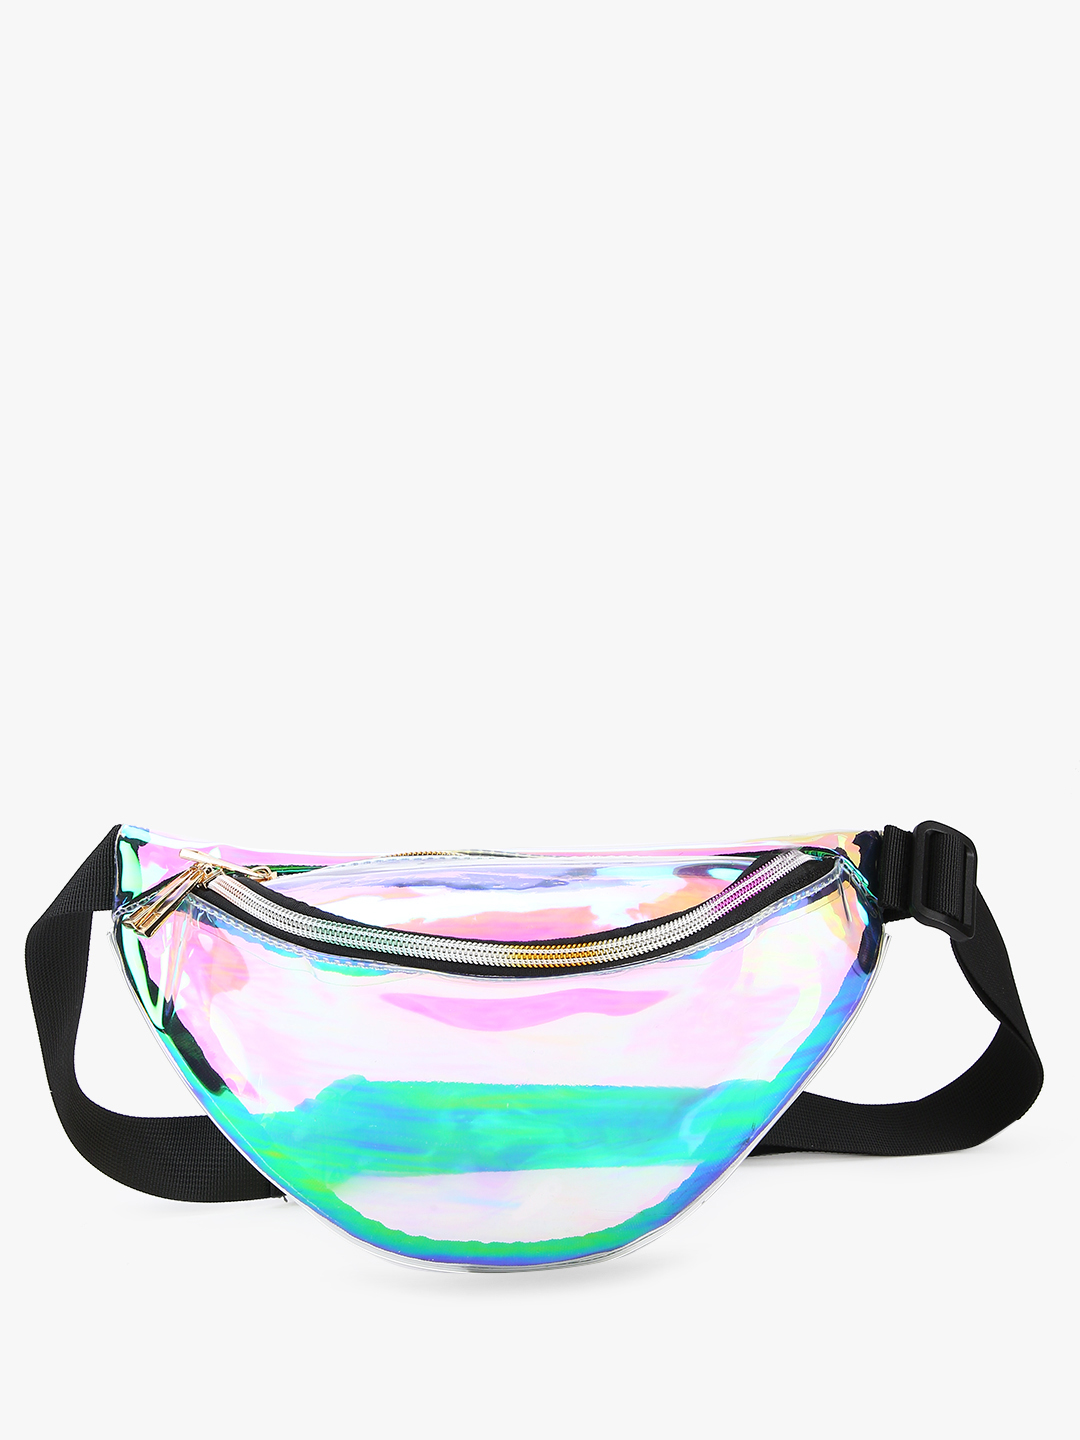 EmmaCloth Multi Holographic Clear Bum Bag 1